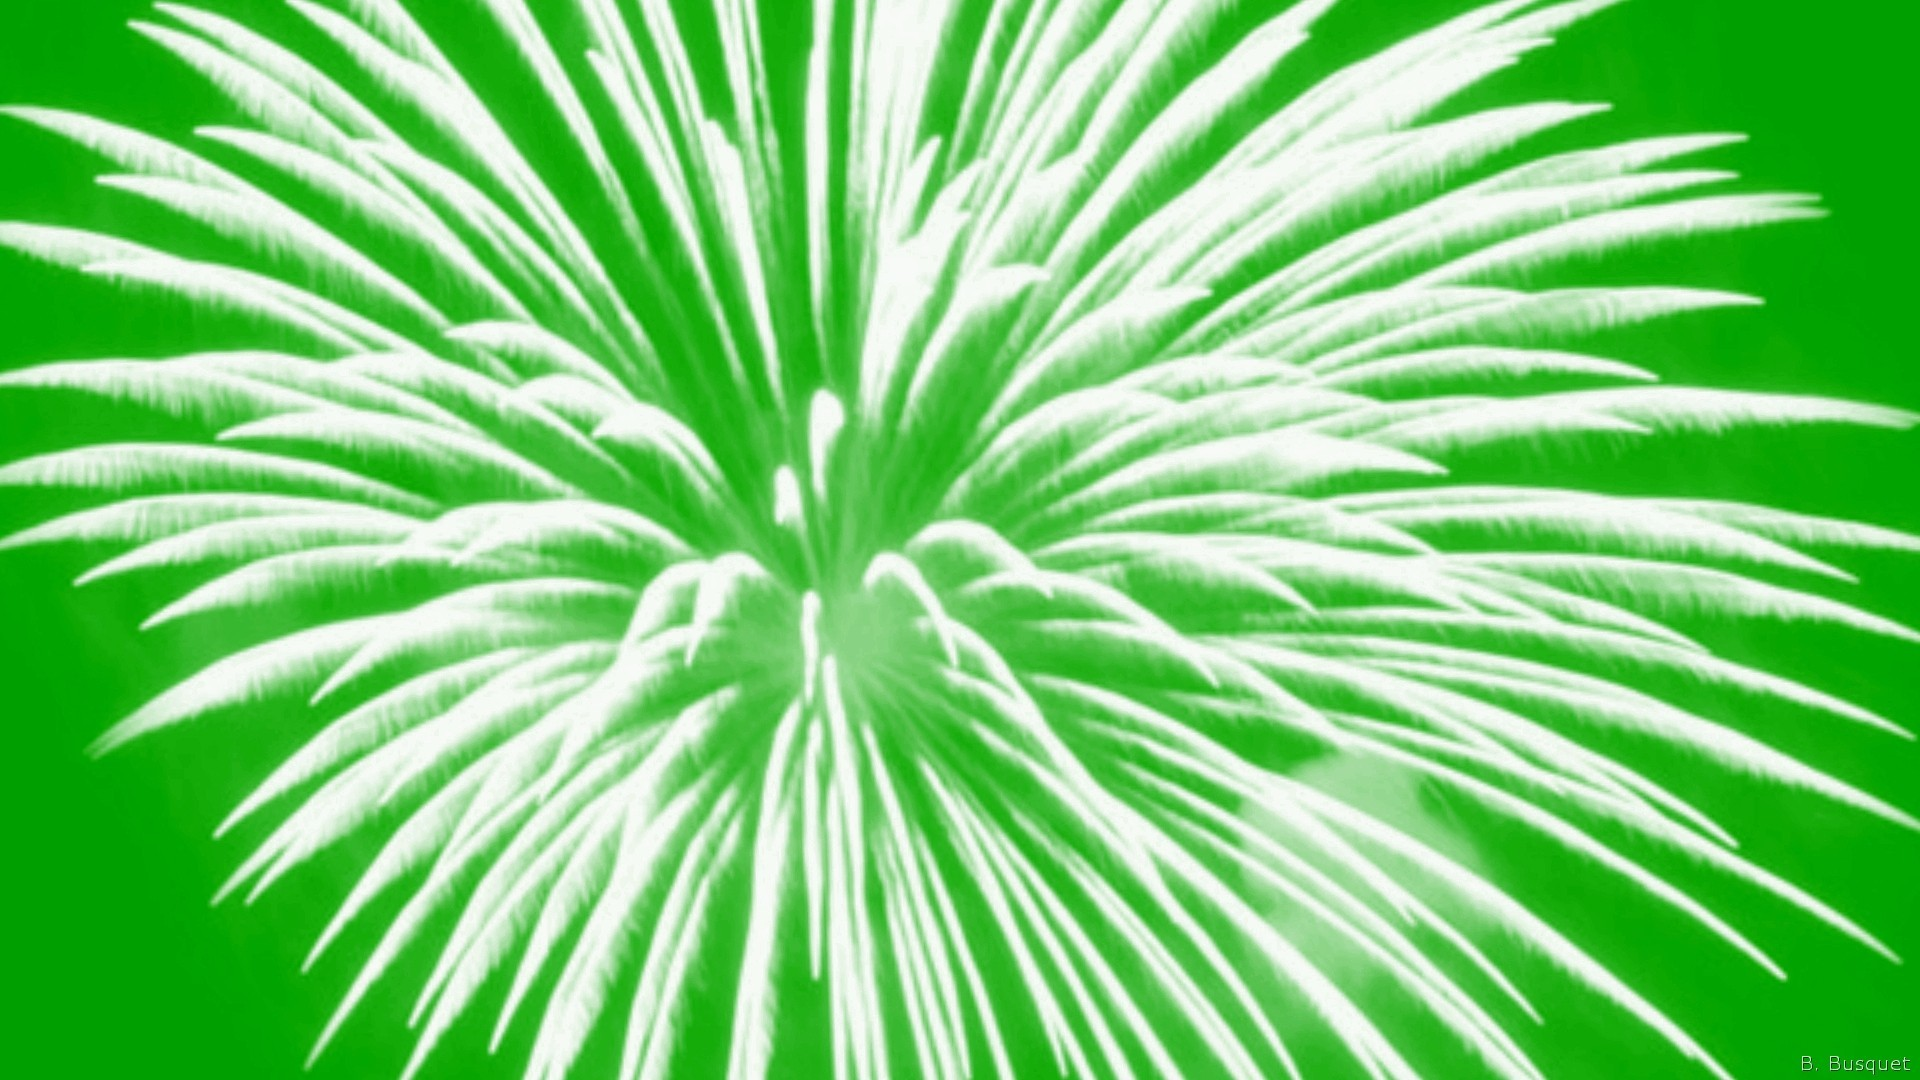 Green wallpaper with rectangles. White fireworks